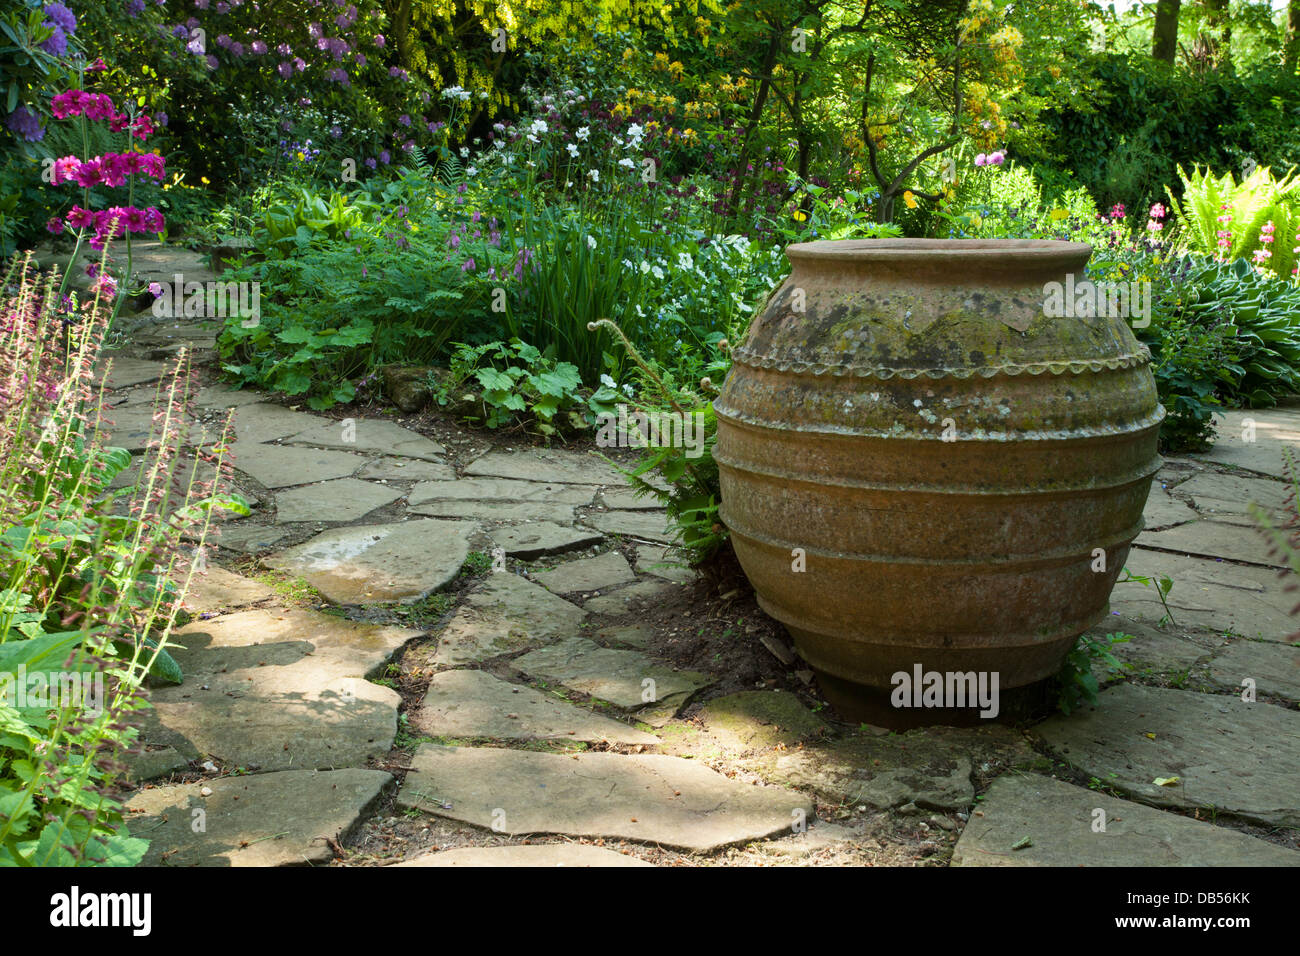 Captivating A Large Ornamental Terracotta Pot Sits On Stone Paving Within The Water  Garden Of Coton Manor Gardens, Northamptonshire, England